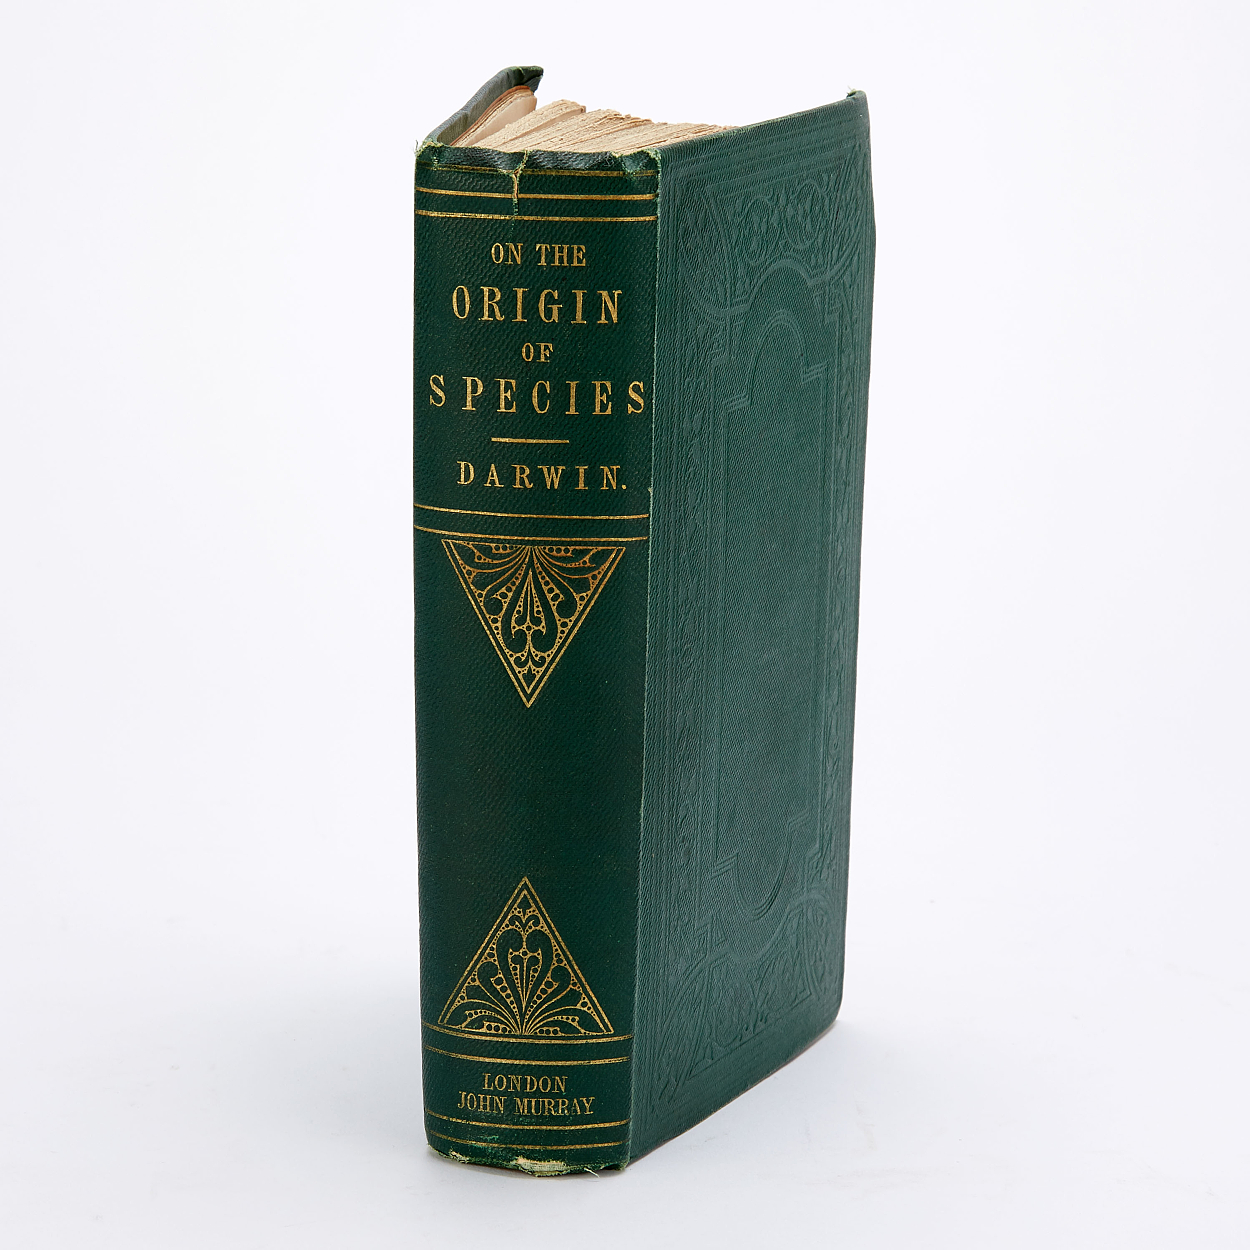 Darwin's On the Origin of Species 3rd ed. 1861